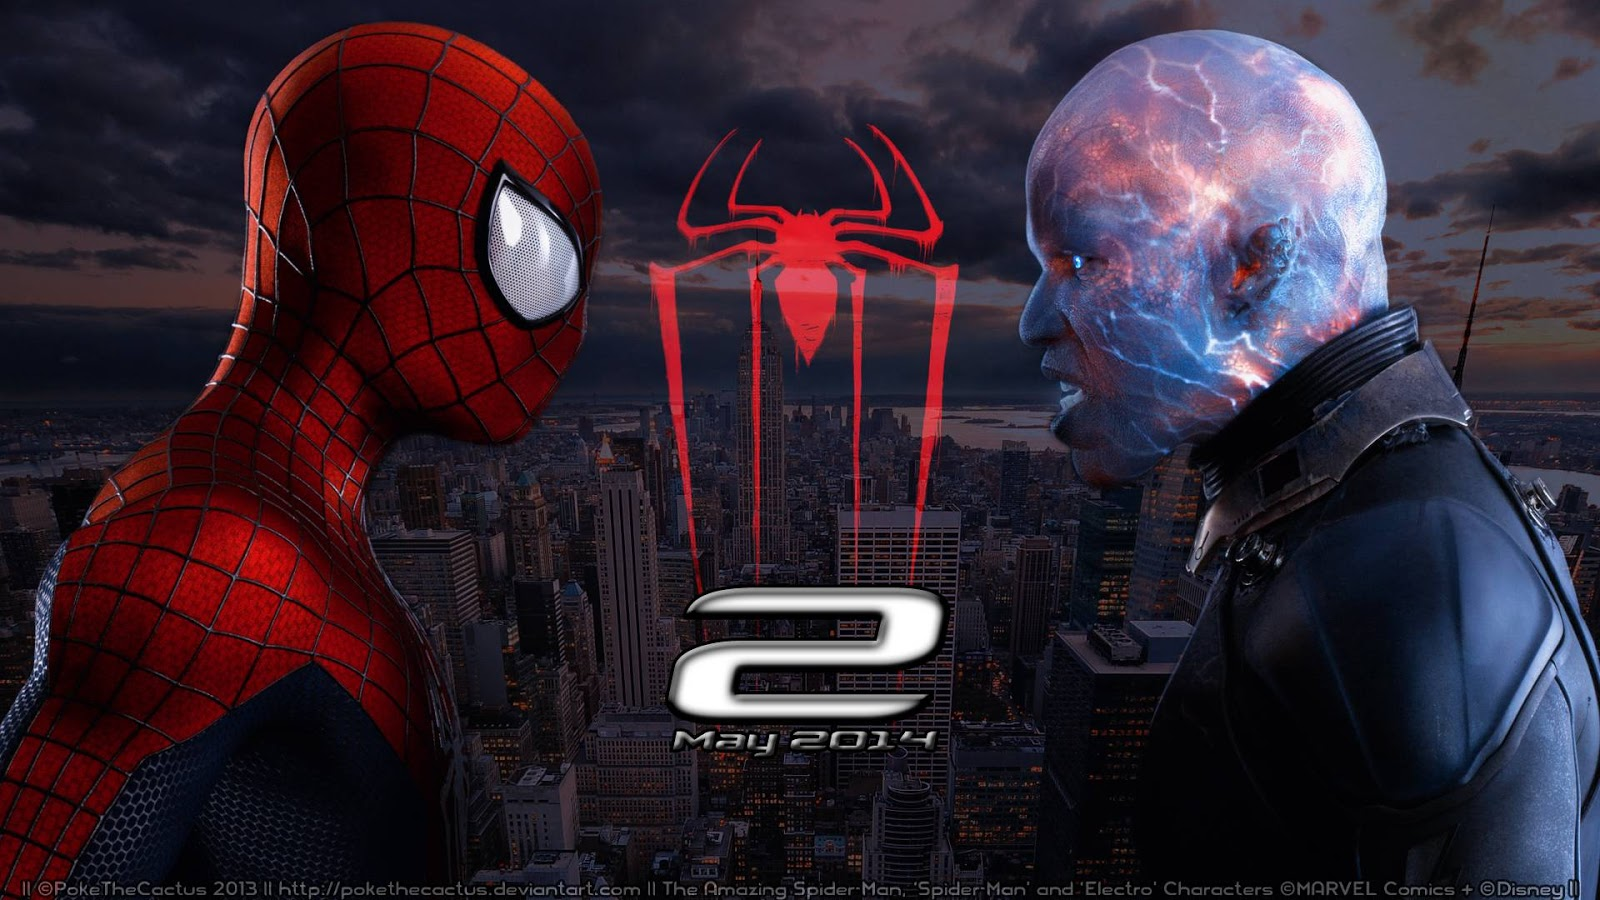 Download The Amazing Spider-Man 2 (2014) BluRay 720p Subtitle Indonesia